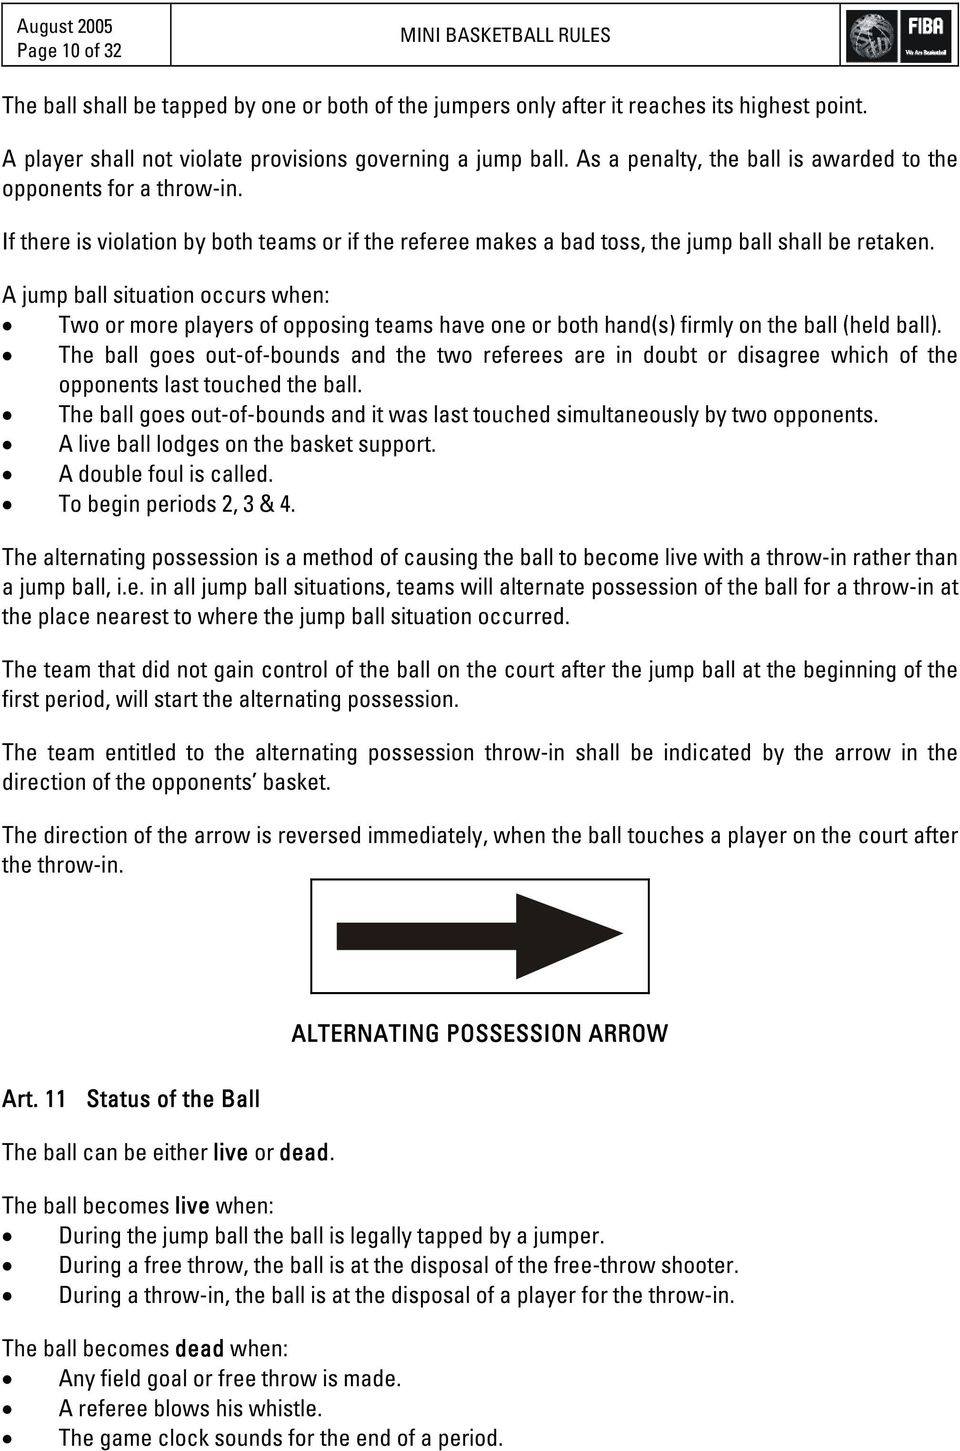 If there is violation by both teams or if the referee makes a bad toss, the jump ball shall be retaken.